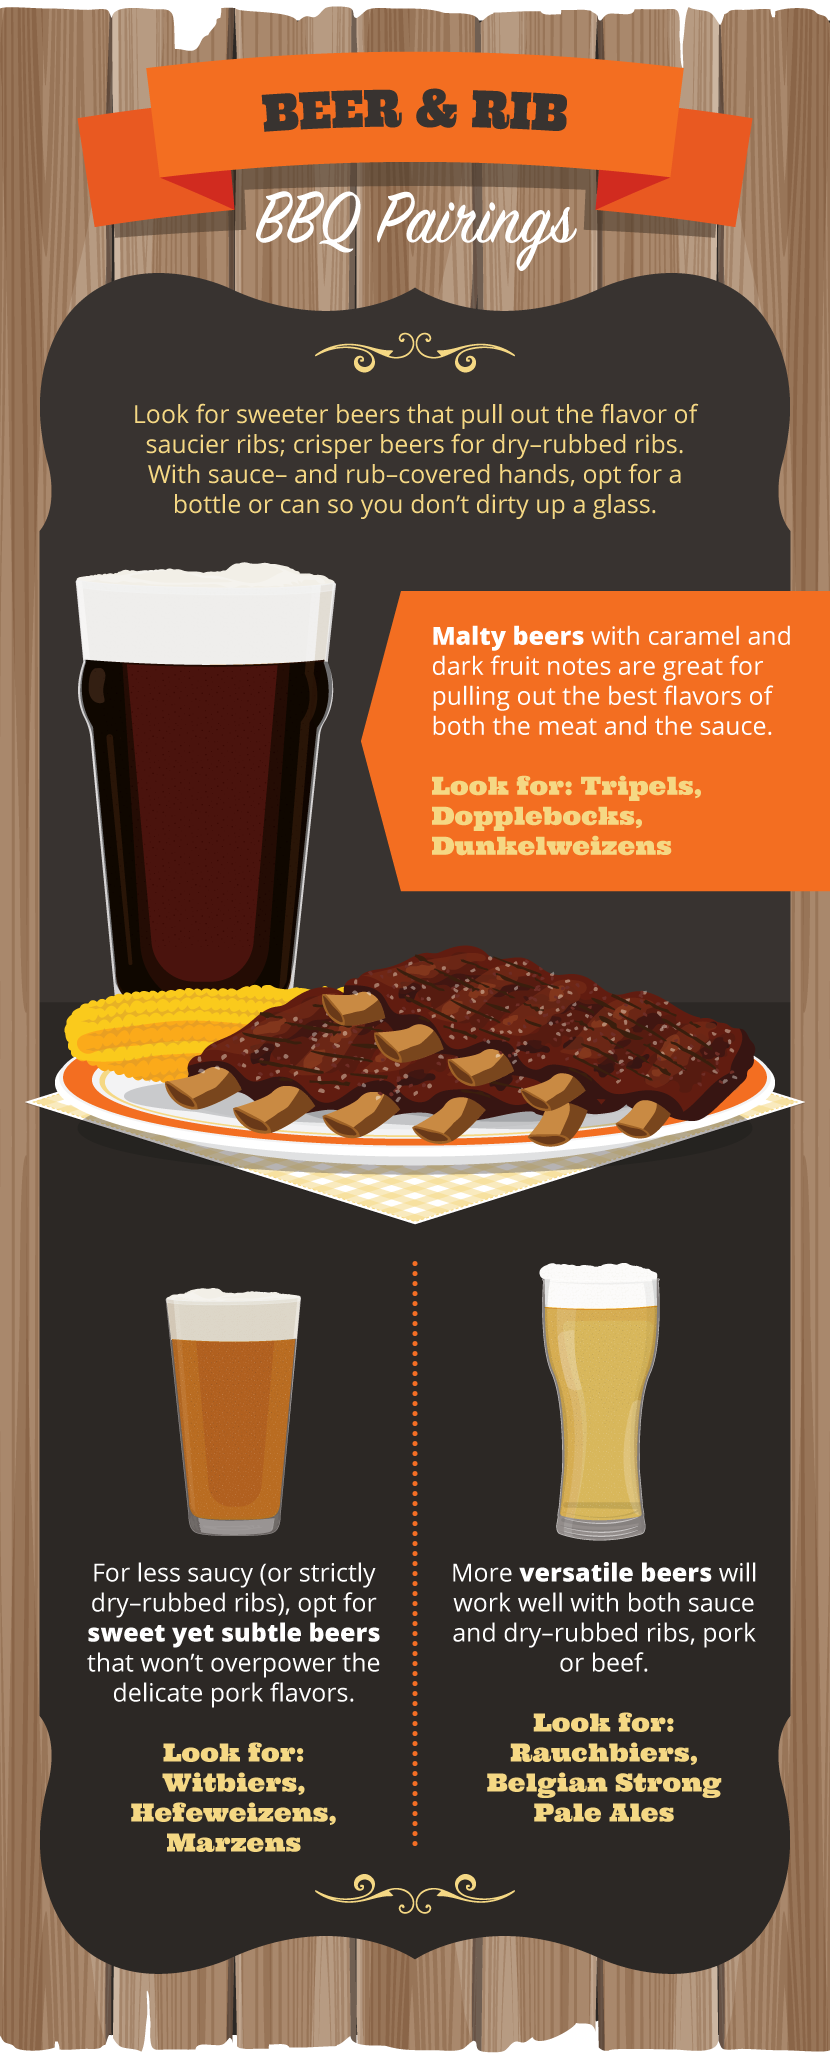 beer and ribs pairing info-graphic TailgateMaster.com